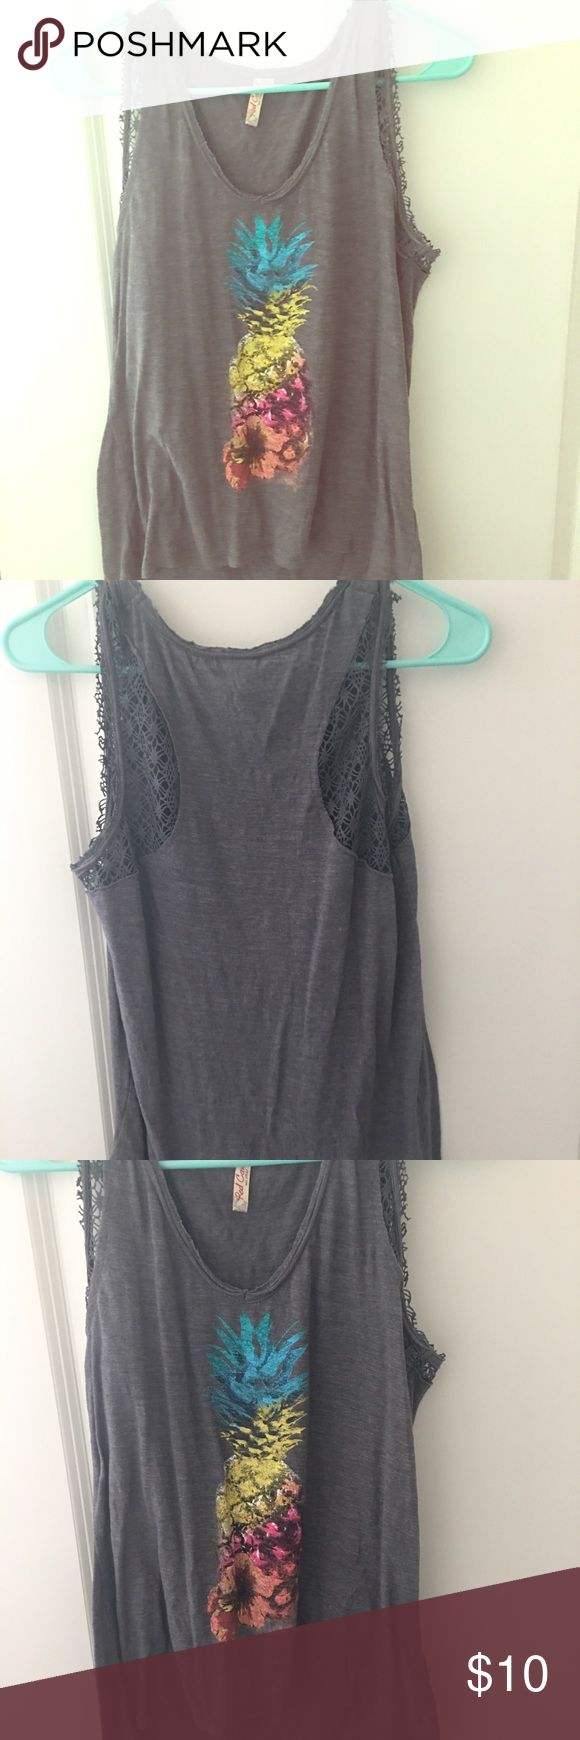 Grey tank top Grey tank top with a picture of a colorful pineapple in the middle 🍍never worn, great condition. Lace material around the shoulders Red Camel Tops Tank Tops